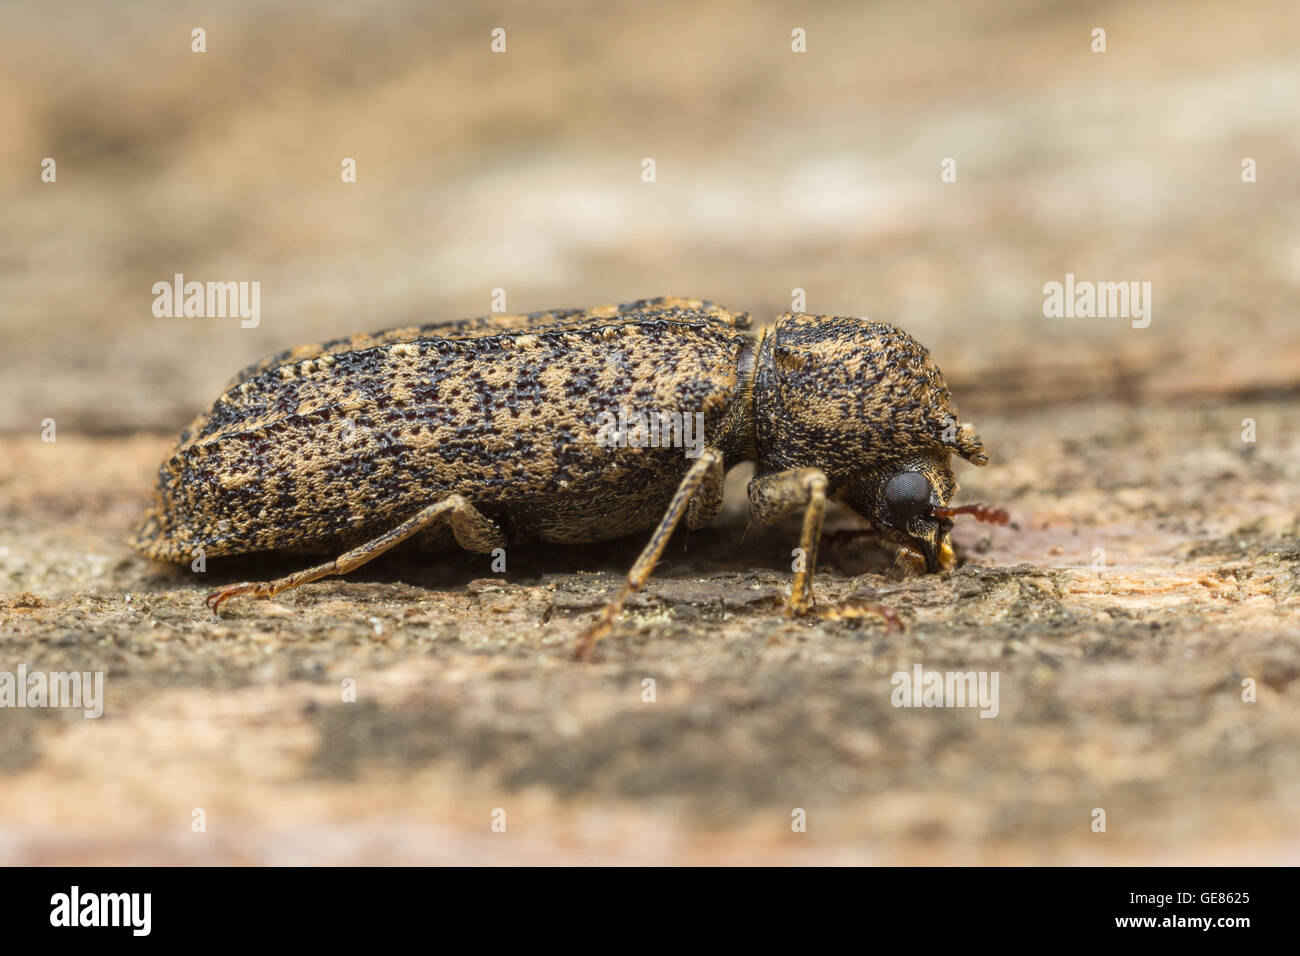 A Horned Powder-post Beetle (Lichenophanes bicornis) explores decaying wood from a dead tree. - Stock Image